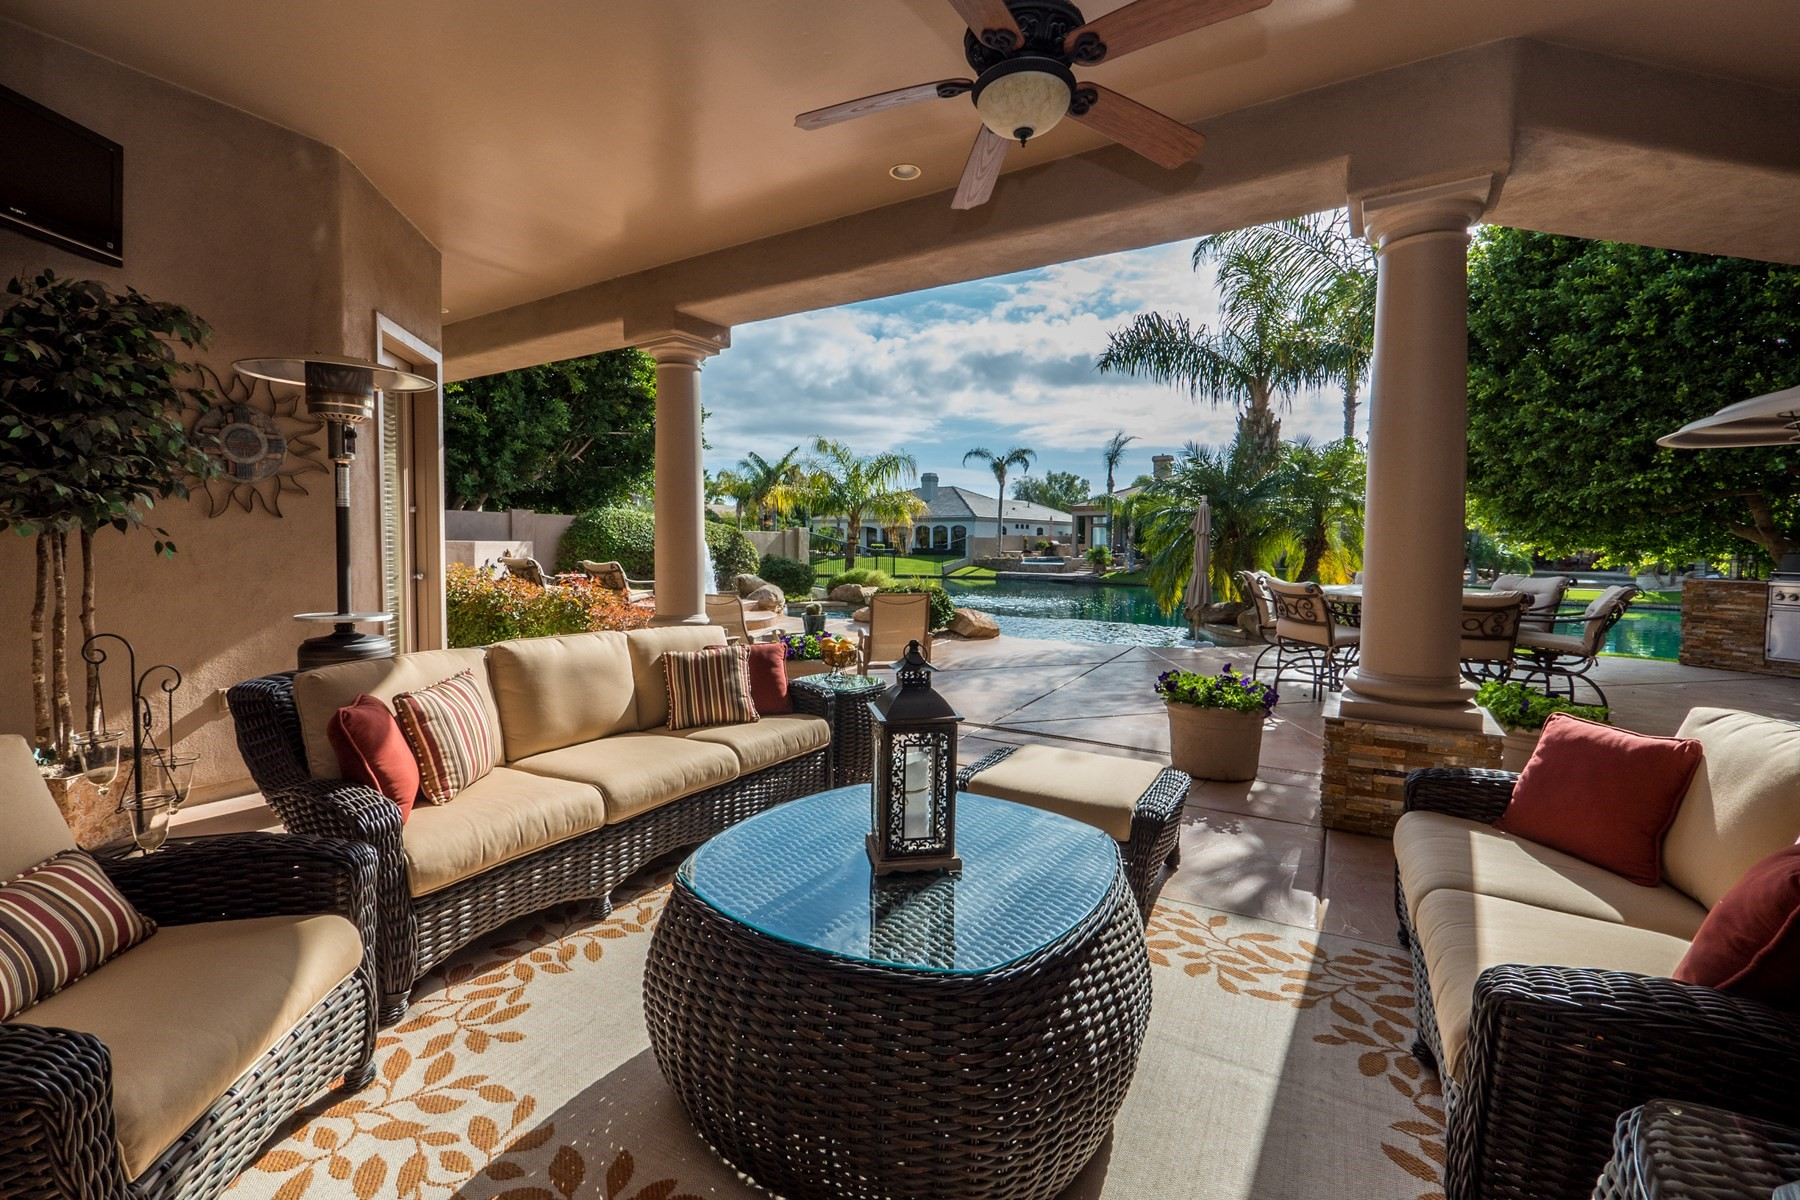 Single Family Home for Sale at Beautiful custom home with stunning views 3441 S Camellia Pl Chandler, Arizona, 85248 United States